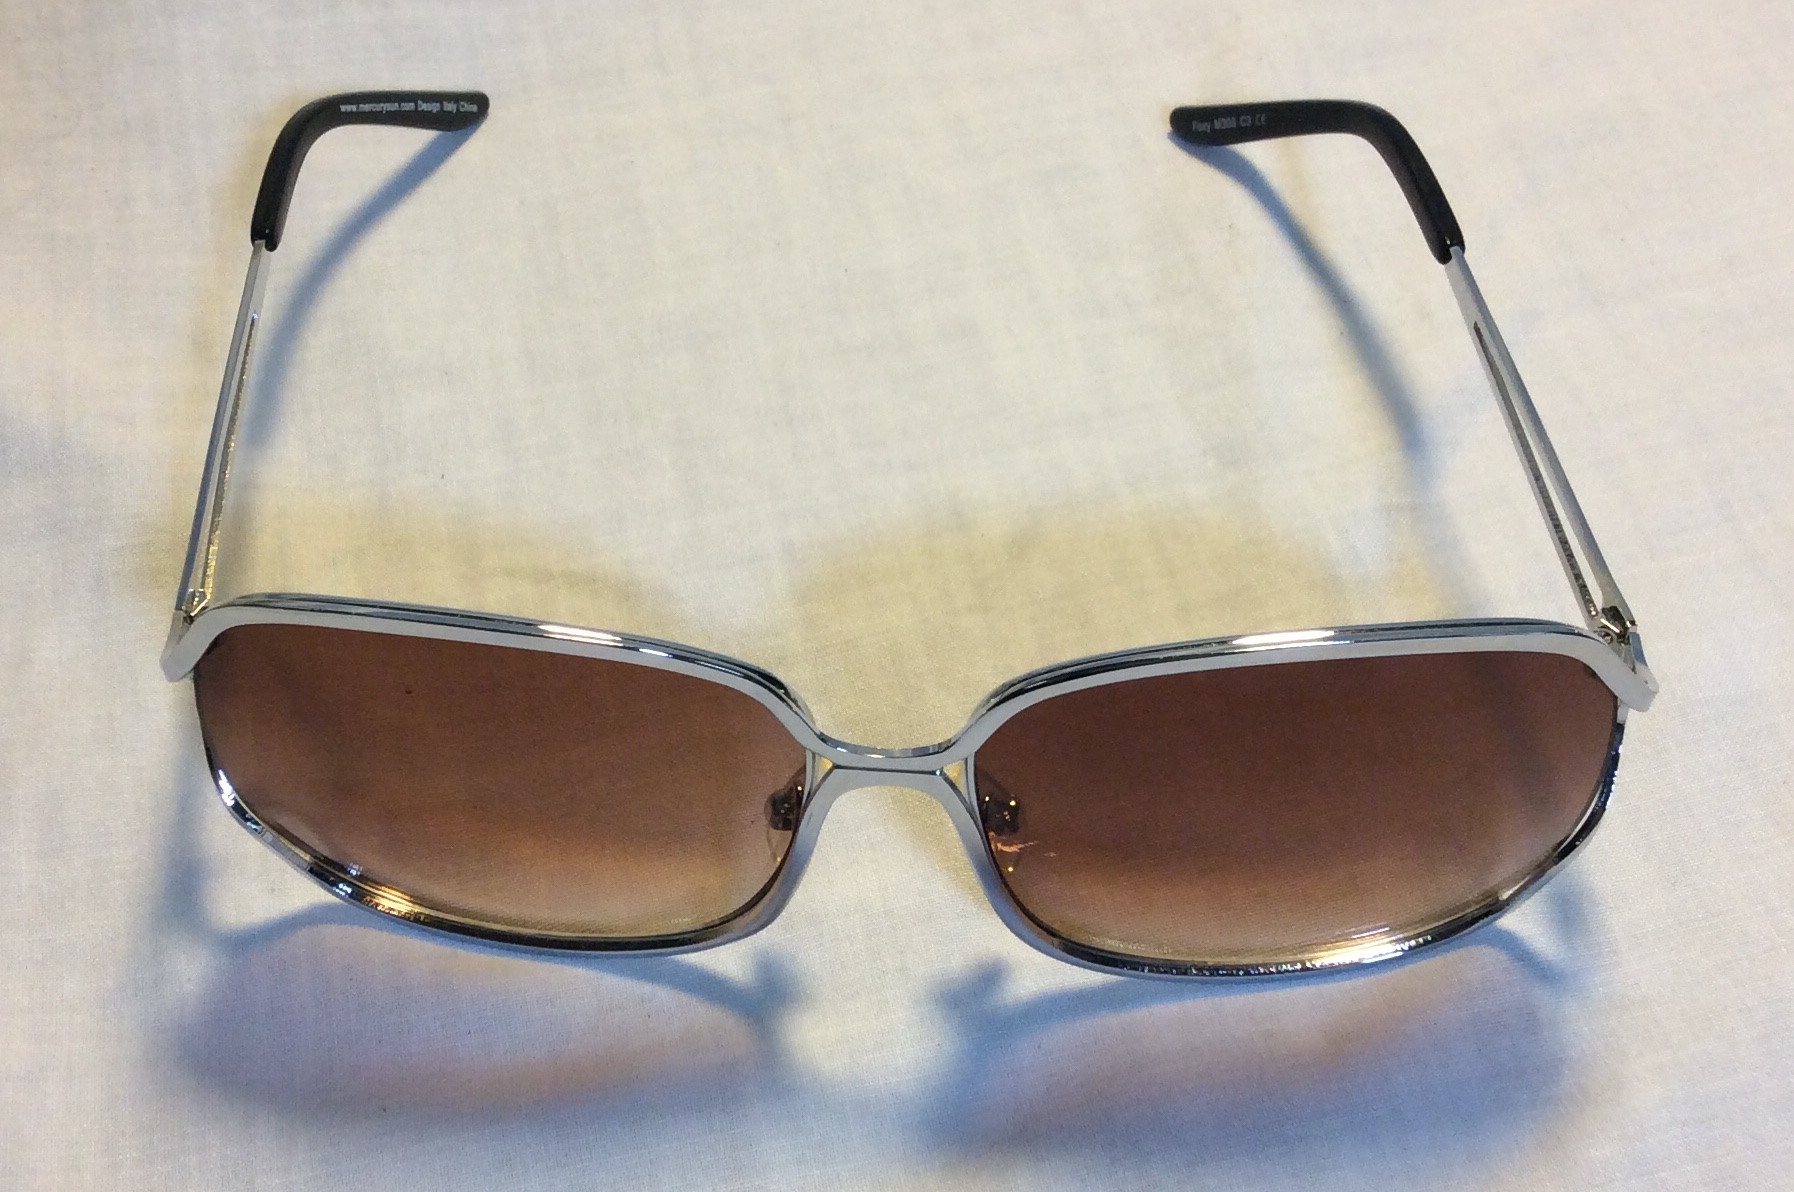 Large square silver sunglasses